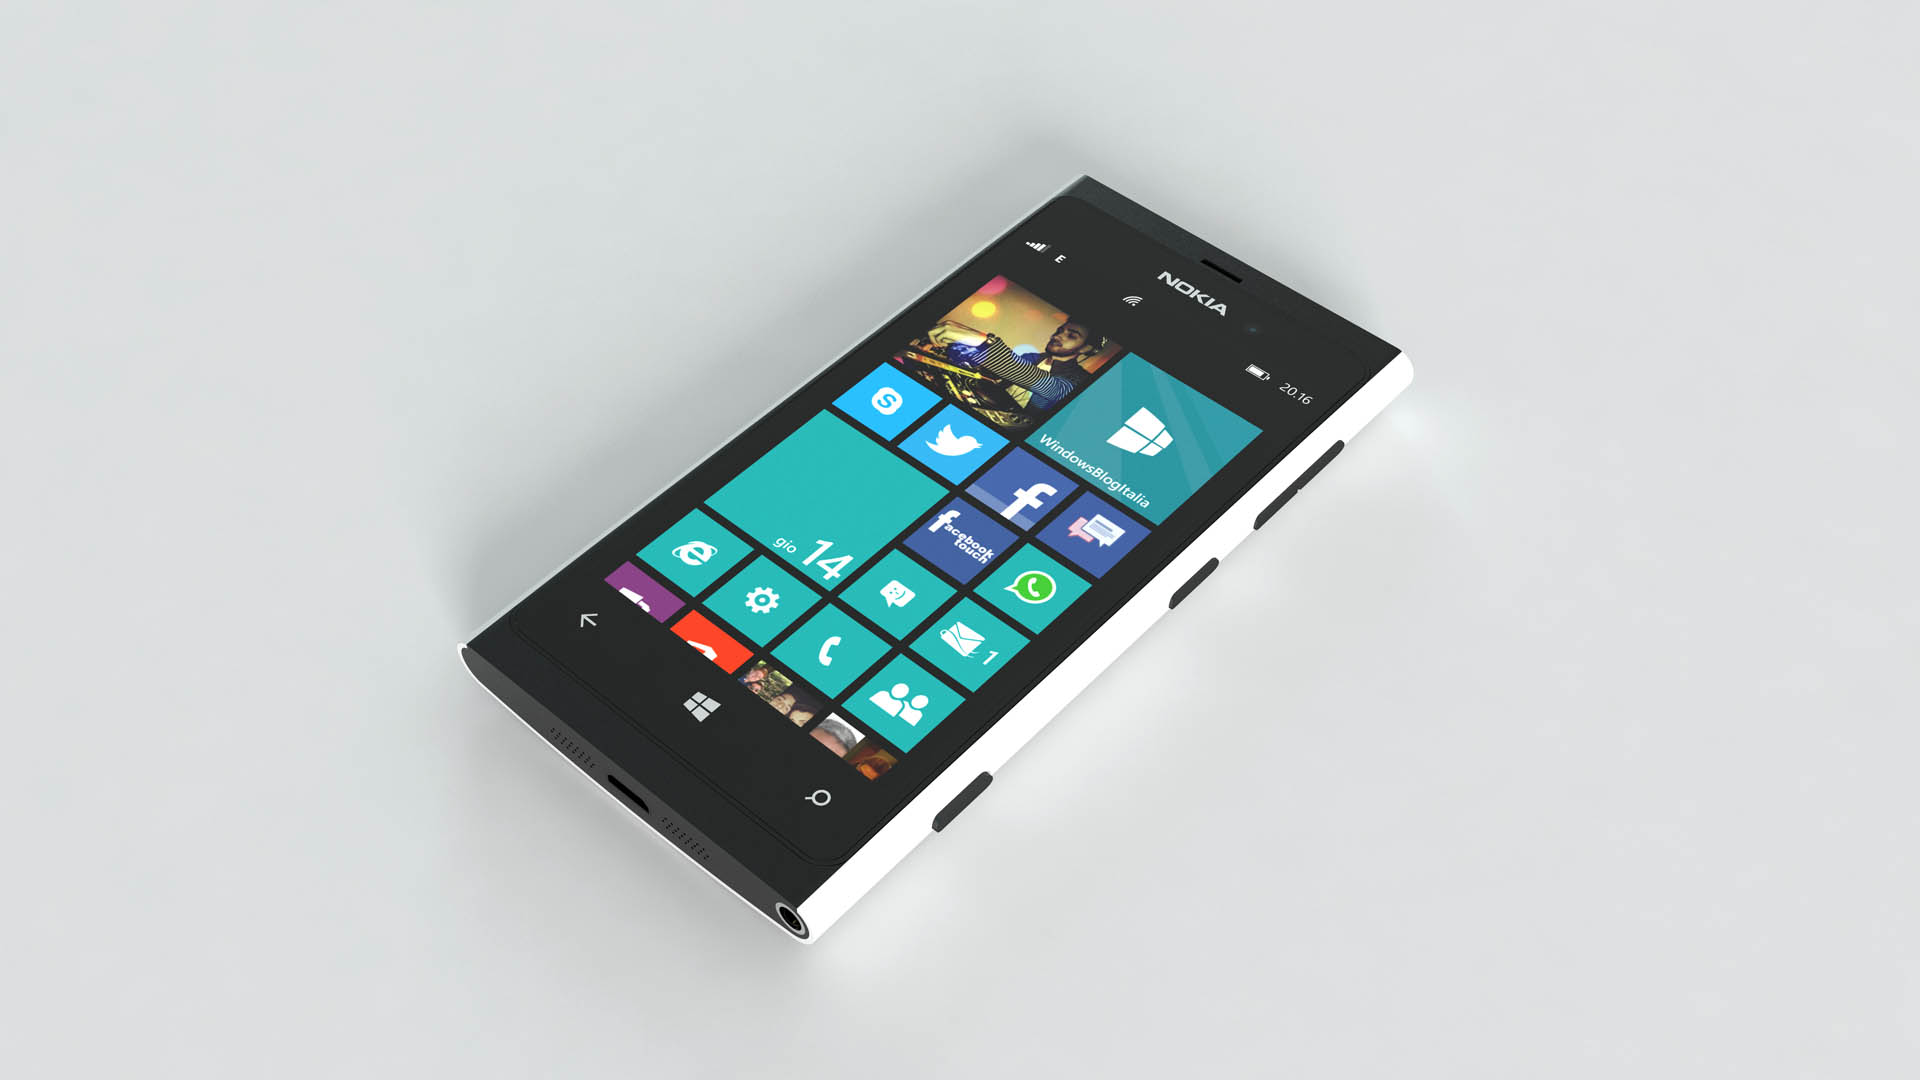 Nokia Lumia 880 white